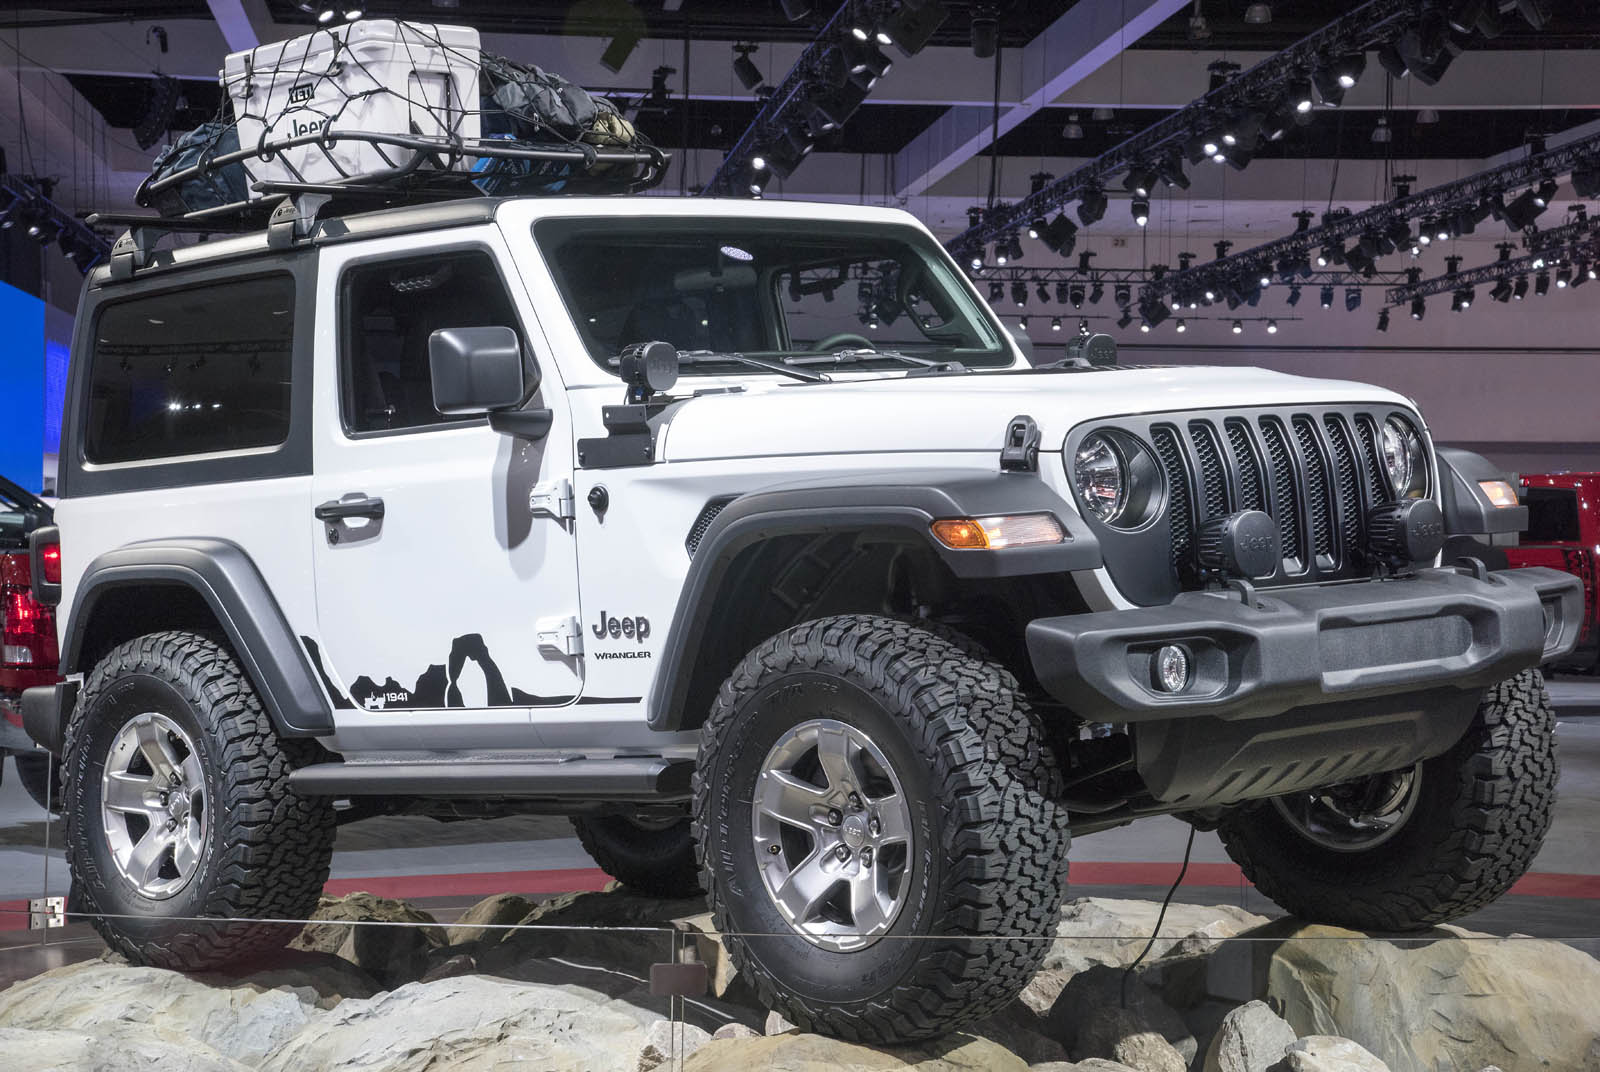 new wranglers show off mopar jeep performance parts carscoops. Black Bedroom Furniture Sets. Home Design Ideas